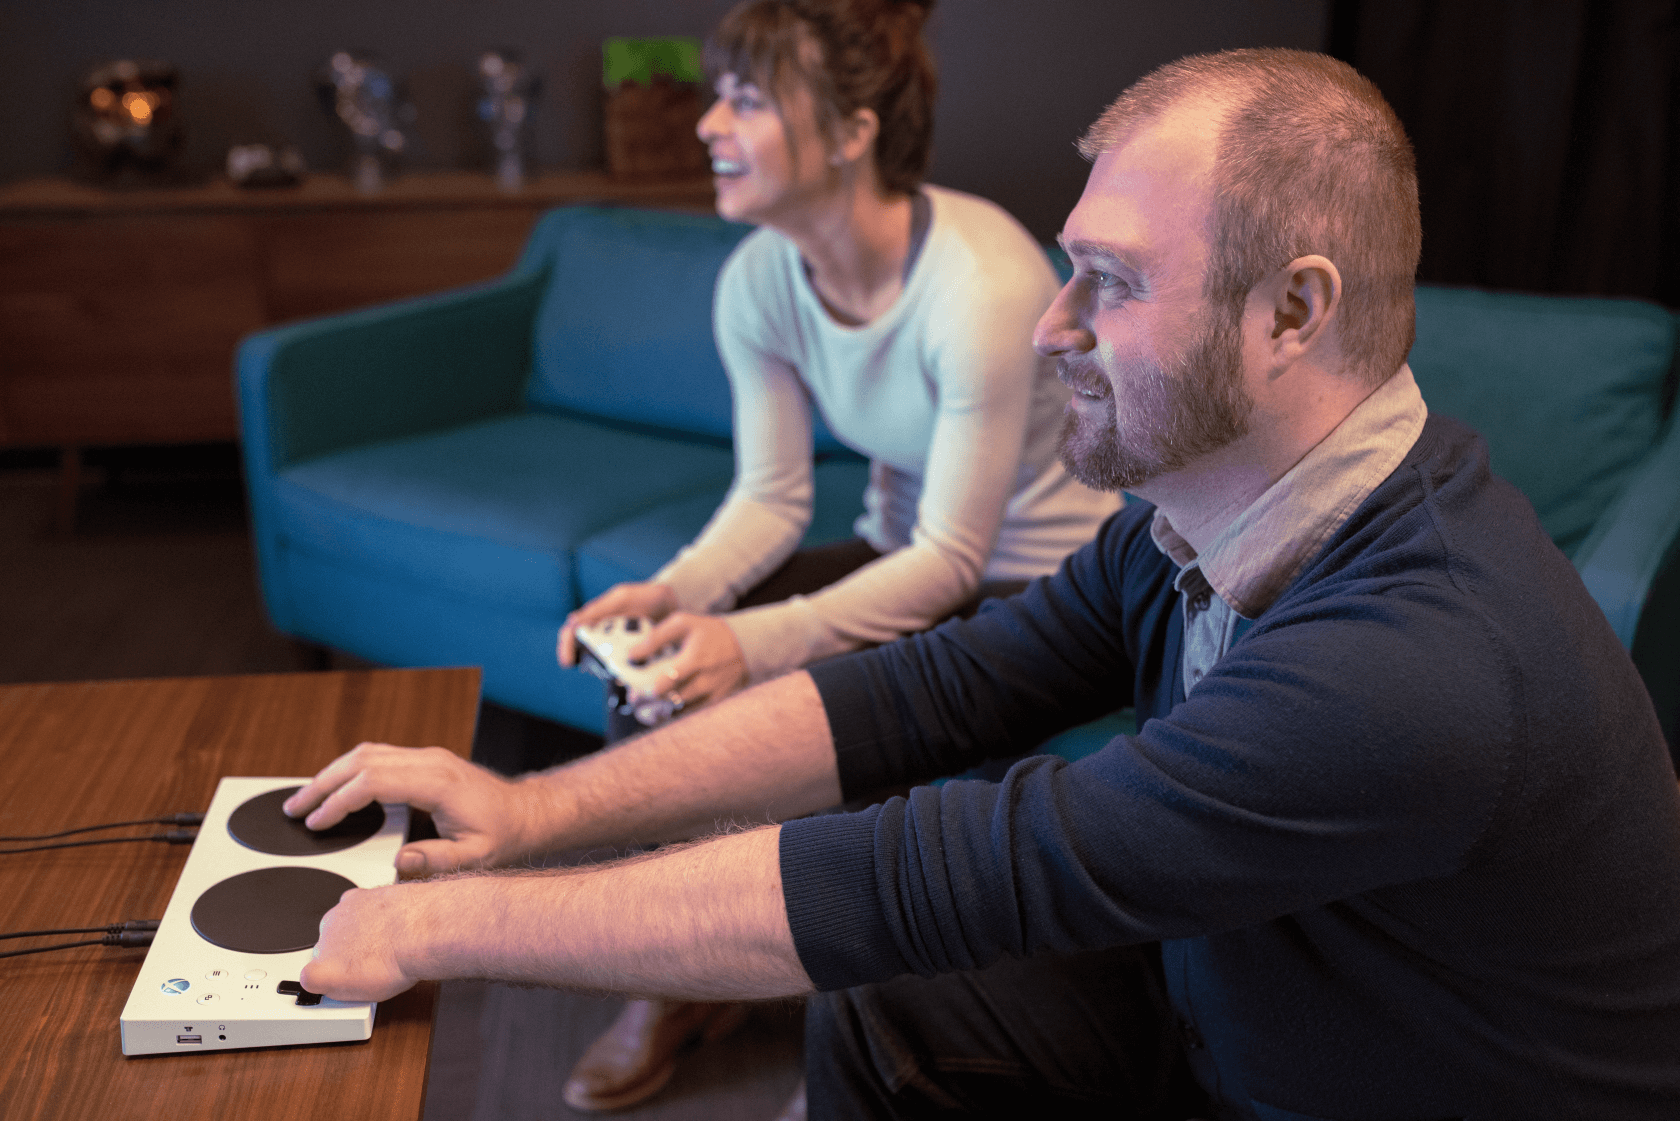 The Xbox Adaptive Controller is Microsoft's answer to gamers with limited mobility